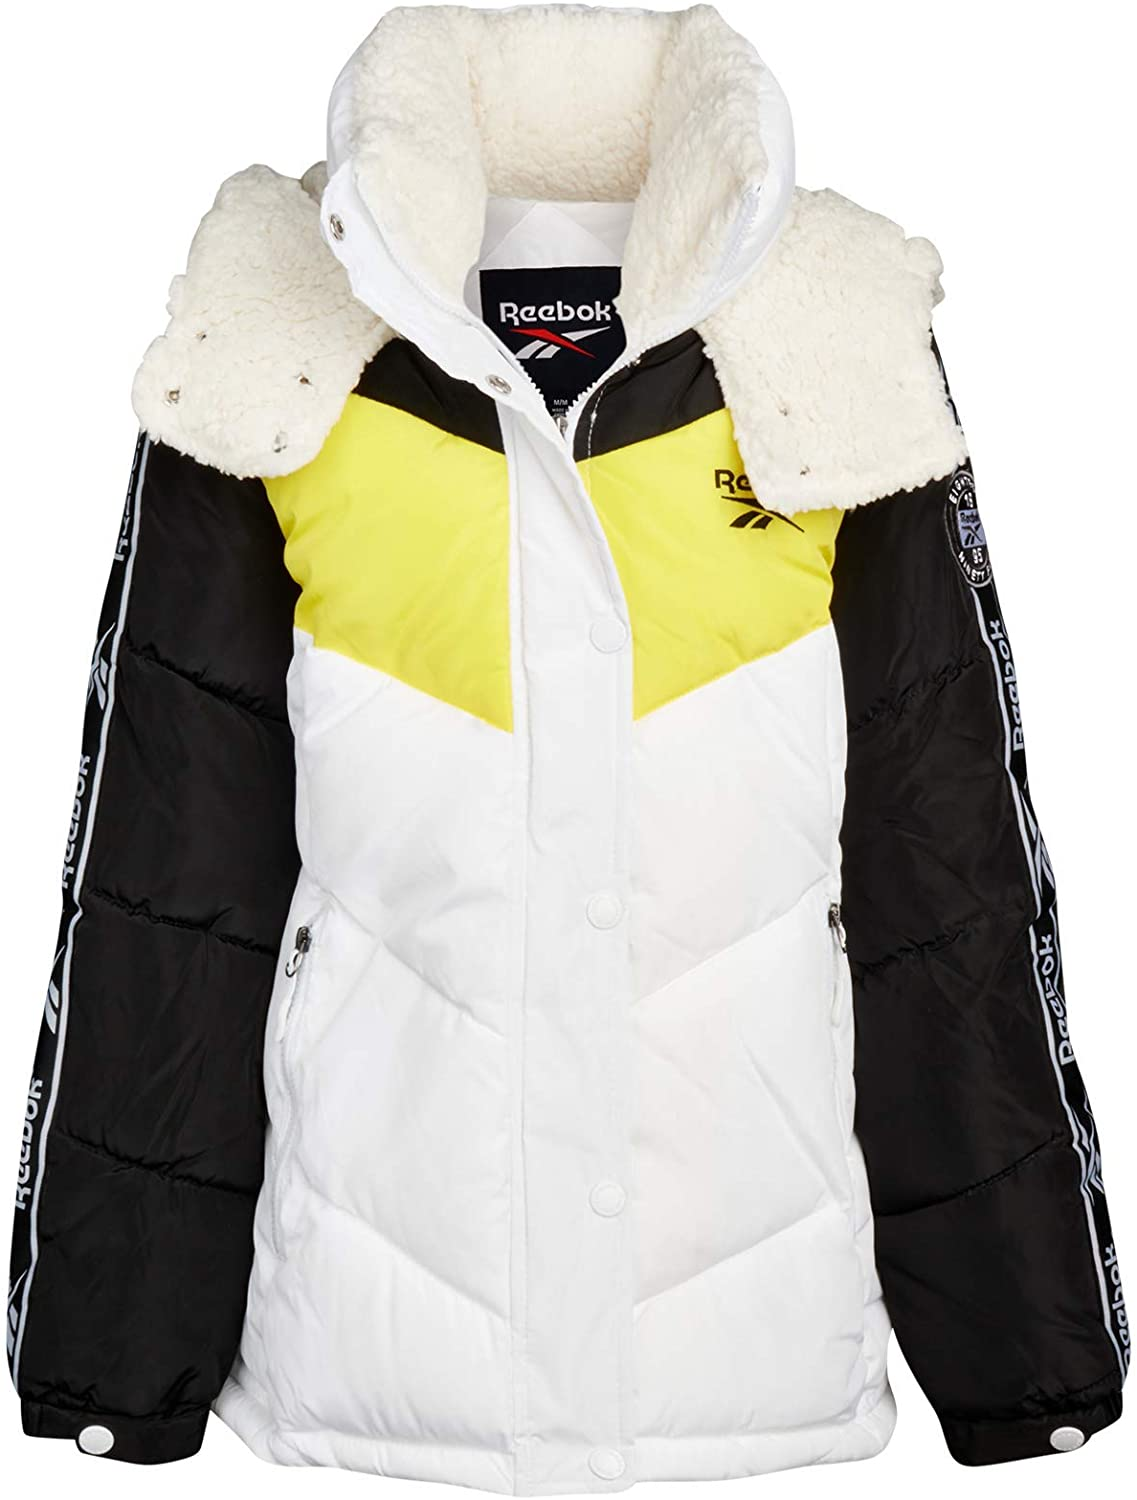 Reebok Women's Winter Jacket - Short-Length Bubble Puffer Parka Jacket with Hood